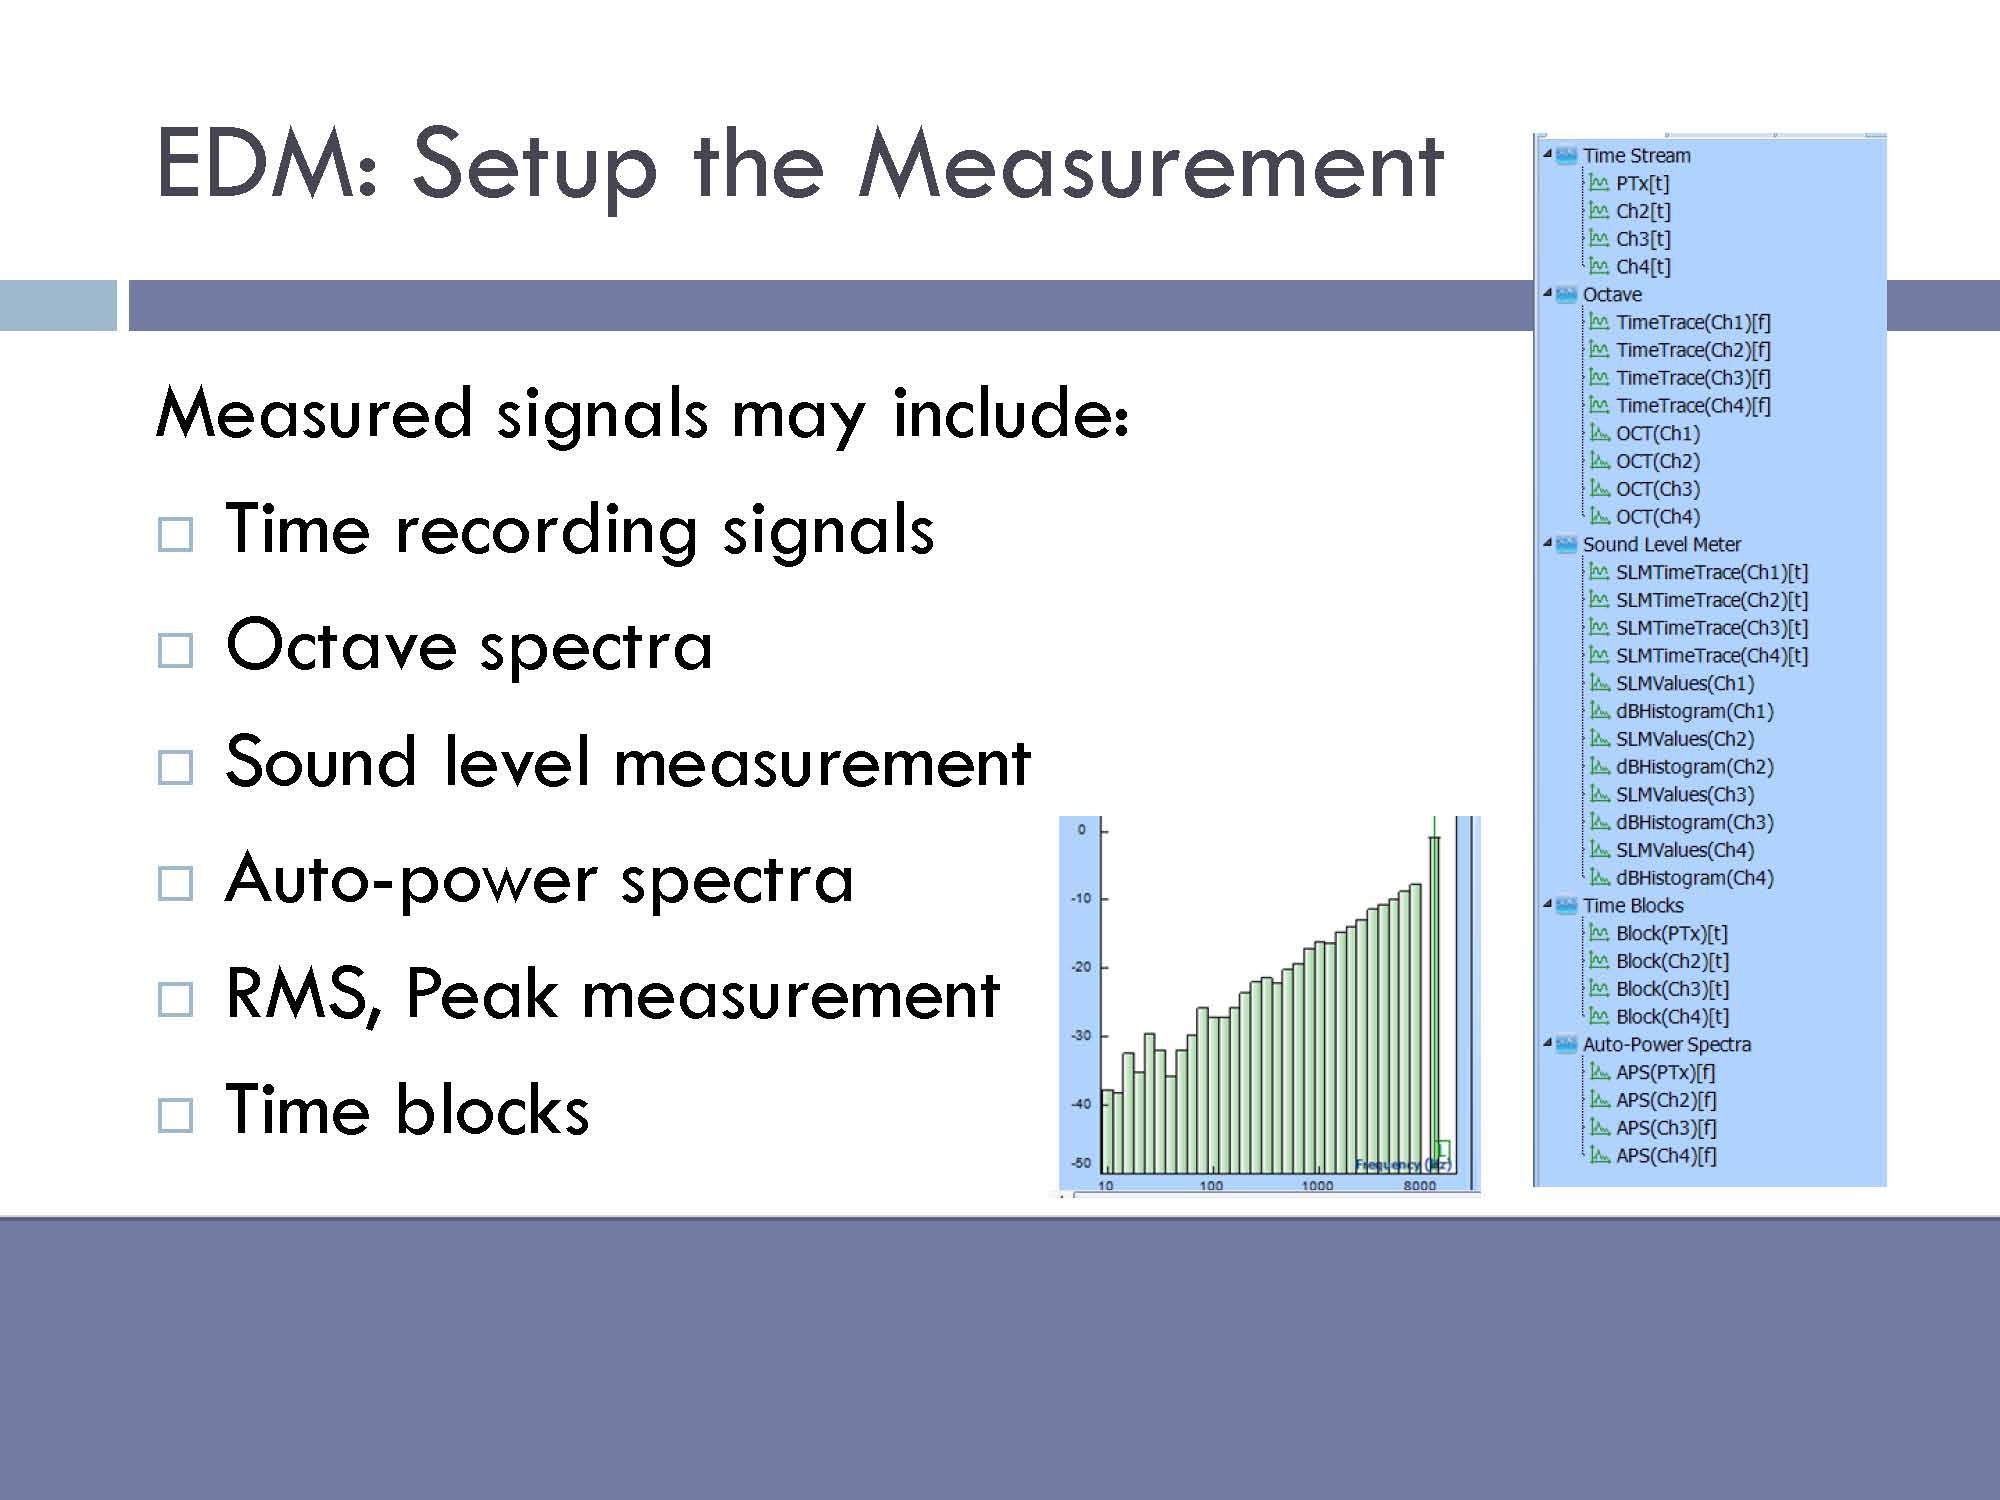 Measured signals may include: time recording signals, octave spectra, sound level measurement, auto power spectra, RMS, Peak measurement, time blocks.